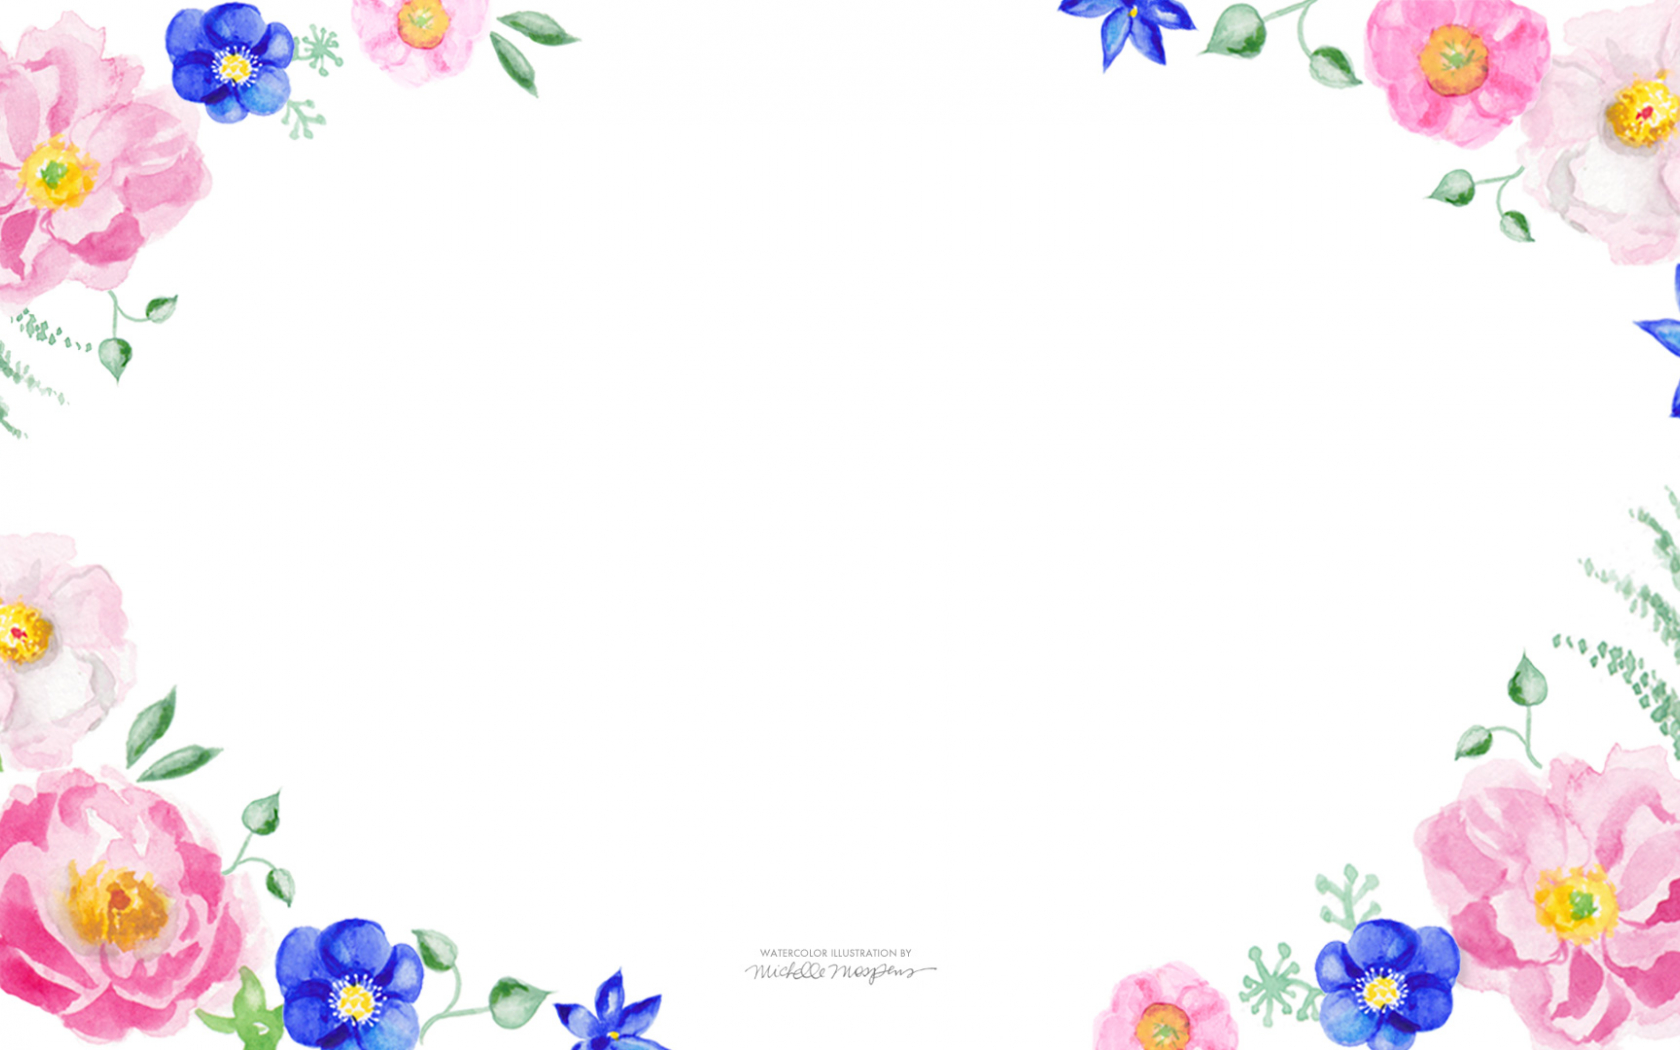 Free Download Floral Watercolor Wallpaper Download A Watercolor